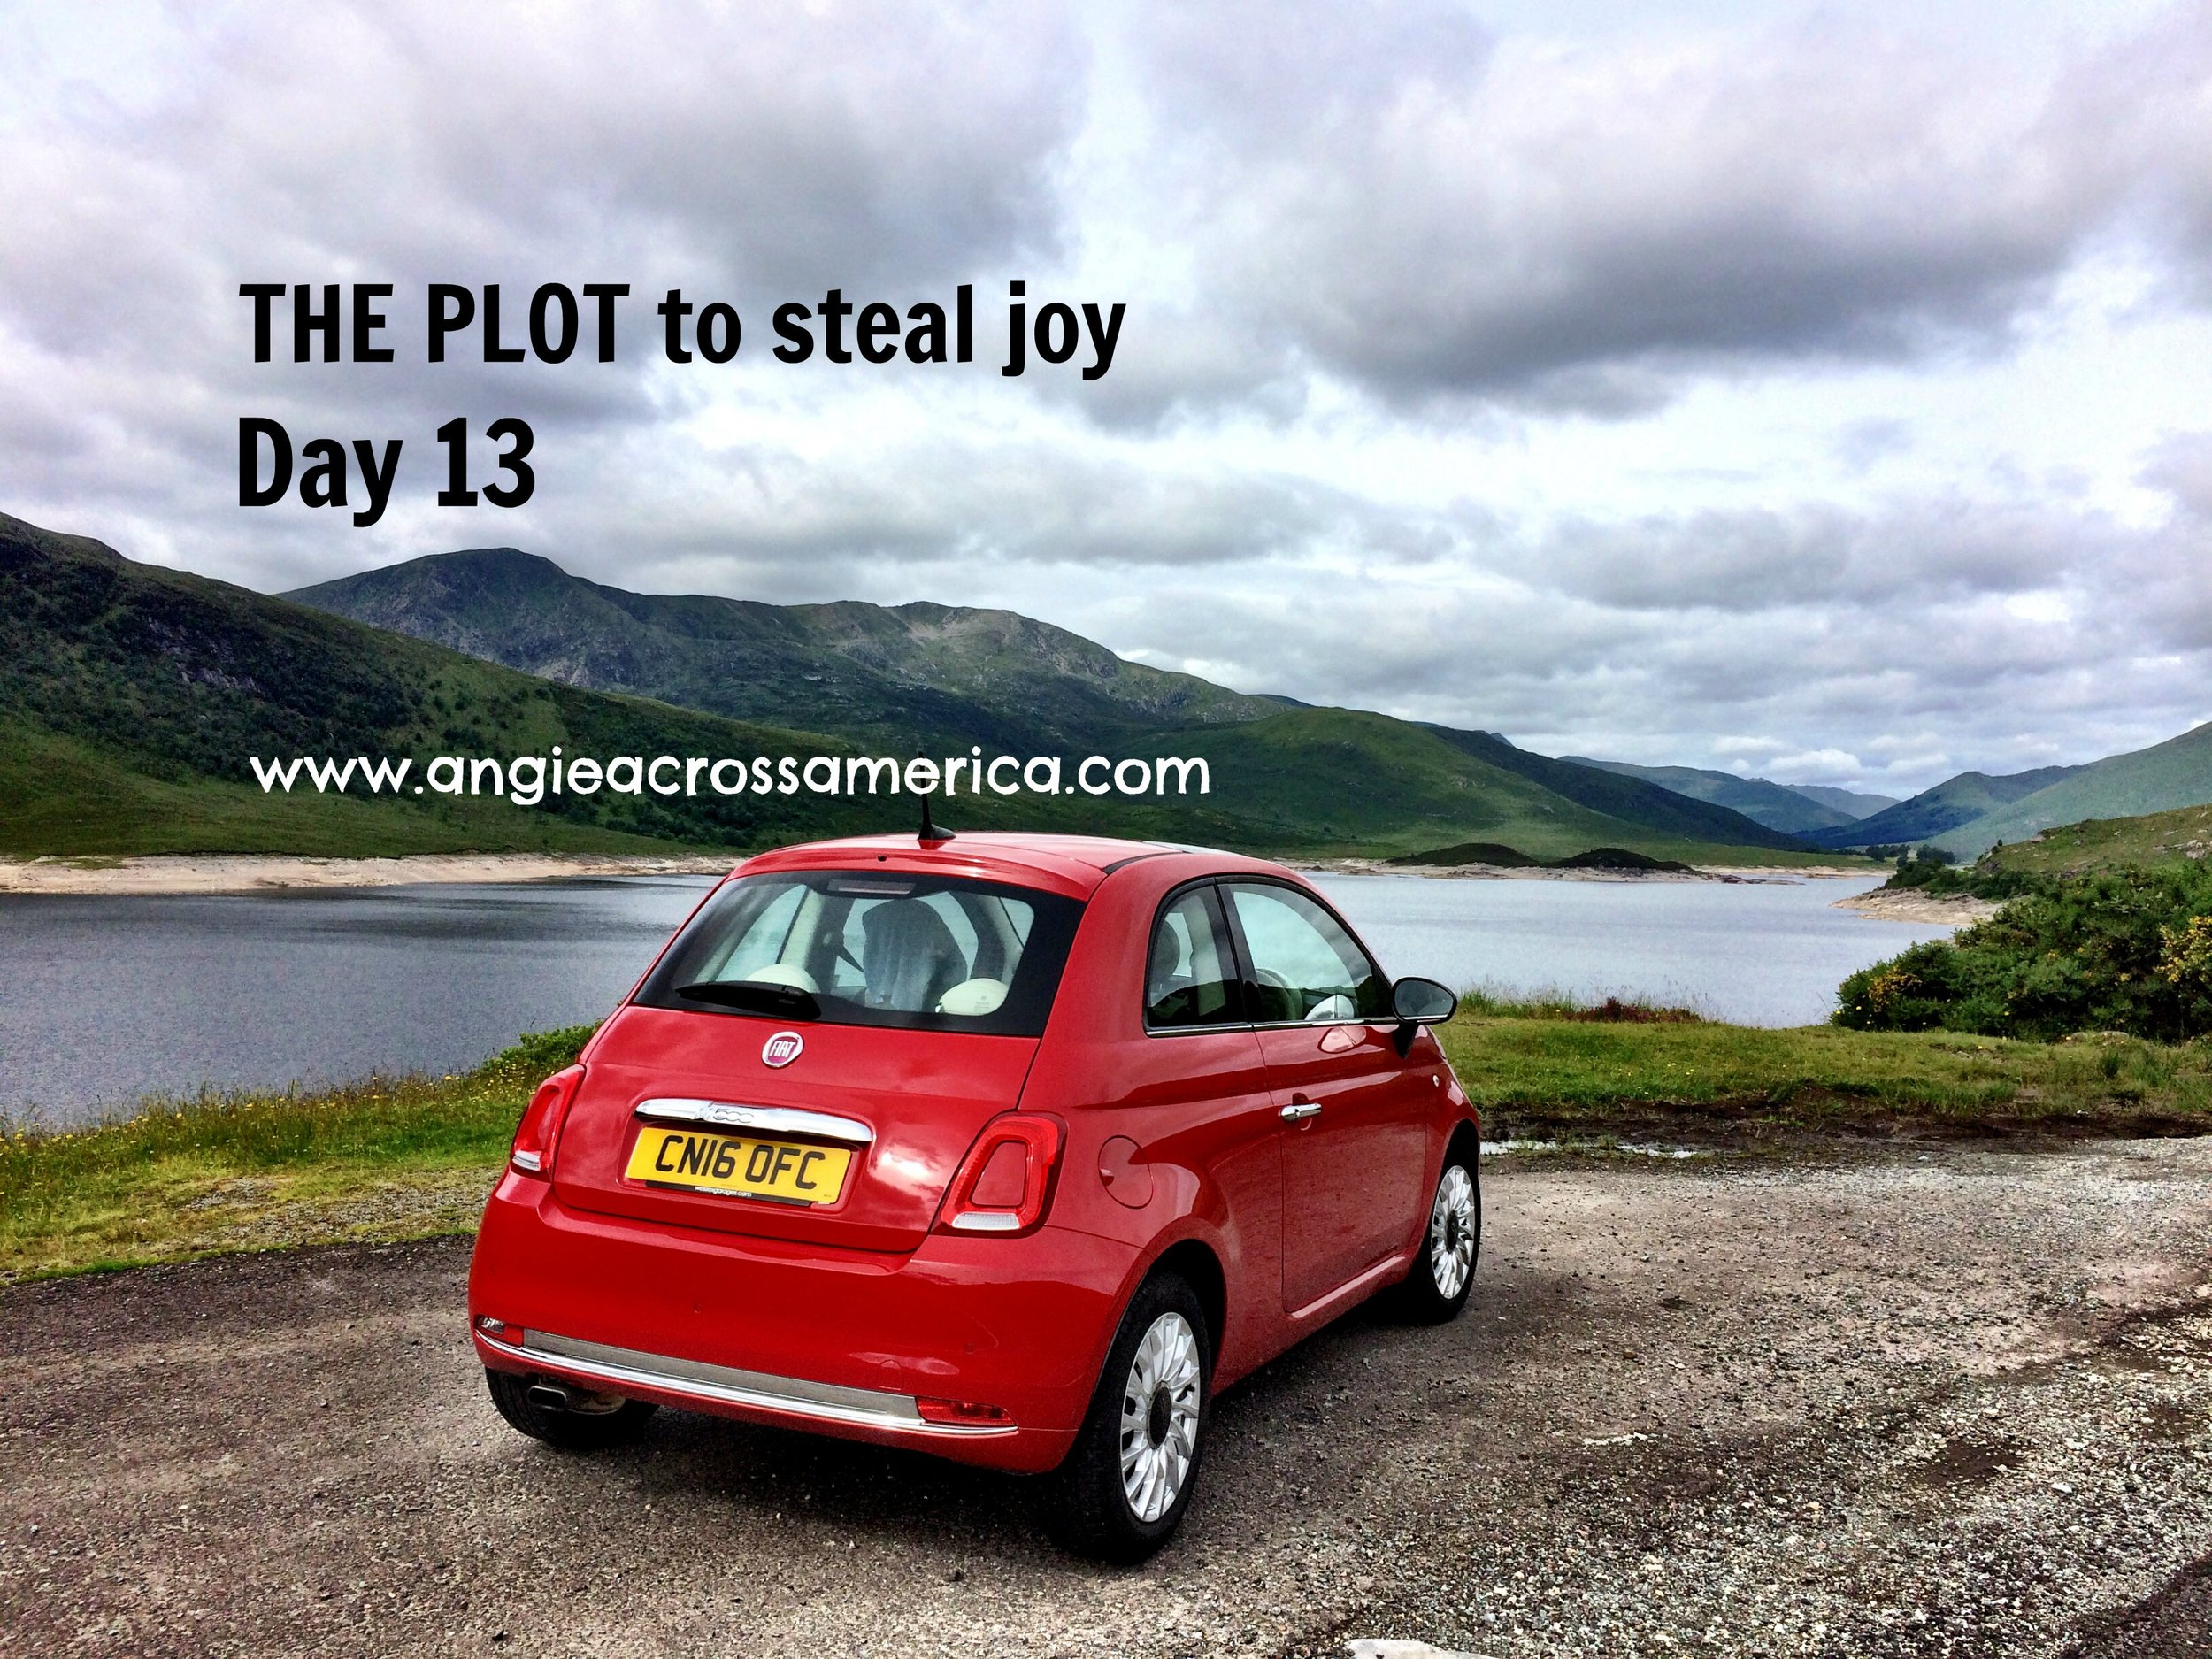 Rented a cute little car and drove to the Scottish Highlands and Isle of Skye in Scotland. Along the way I stopped at the 22-mile long Loch Ness famous for its legendary sea monster Nessie which till today, has no evidential proof really existed. Here's a little trivia:In July 1966, 18-year-old Brenda Sherratt became the first person to swim the length of the loch. It took her 31 hours and 27 minutes.